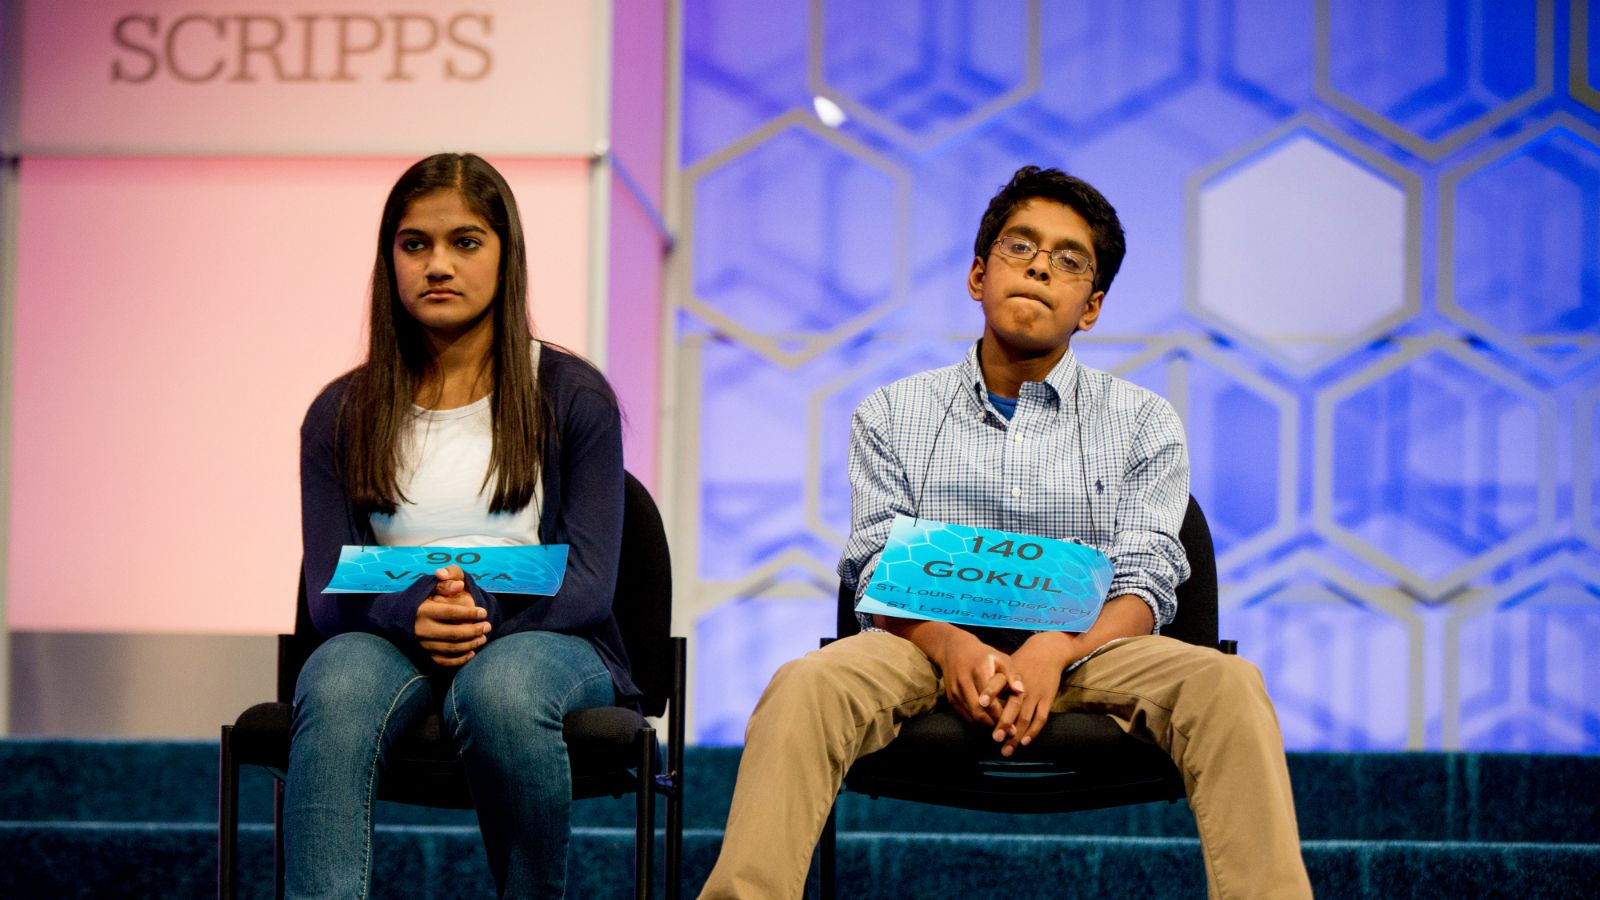 The remaining two spellers Vanya Shivashankar, left, 13, of Olathe, Kan., and Gokul Venkatachalam, 14, of St. Louis, sit onstage together during the finals of the Scripps National Spelling Bee, Thursday, May 28, 2015, in Oxon Hill, Md.